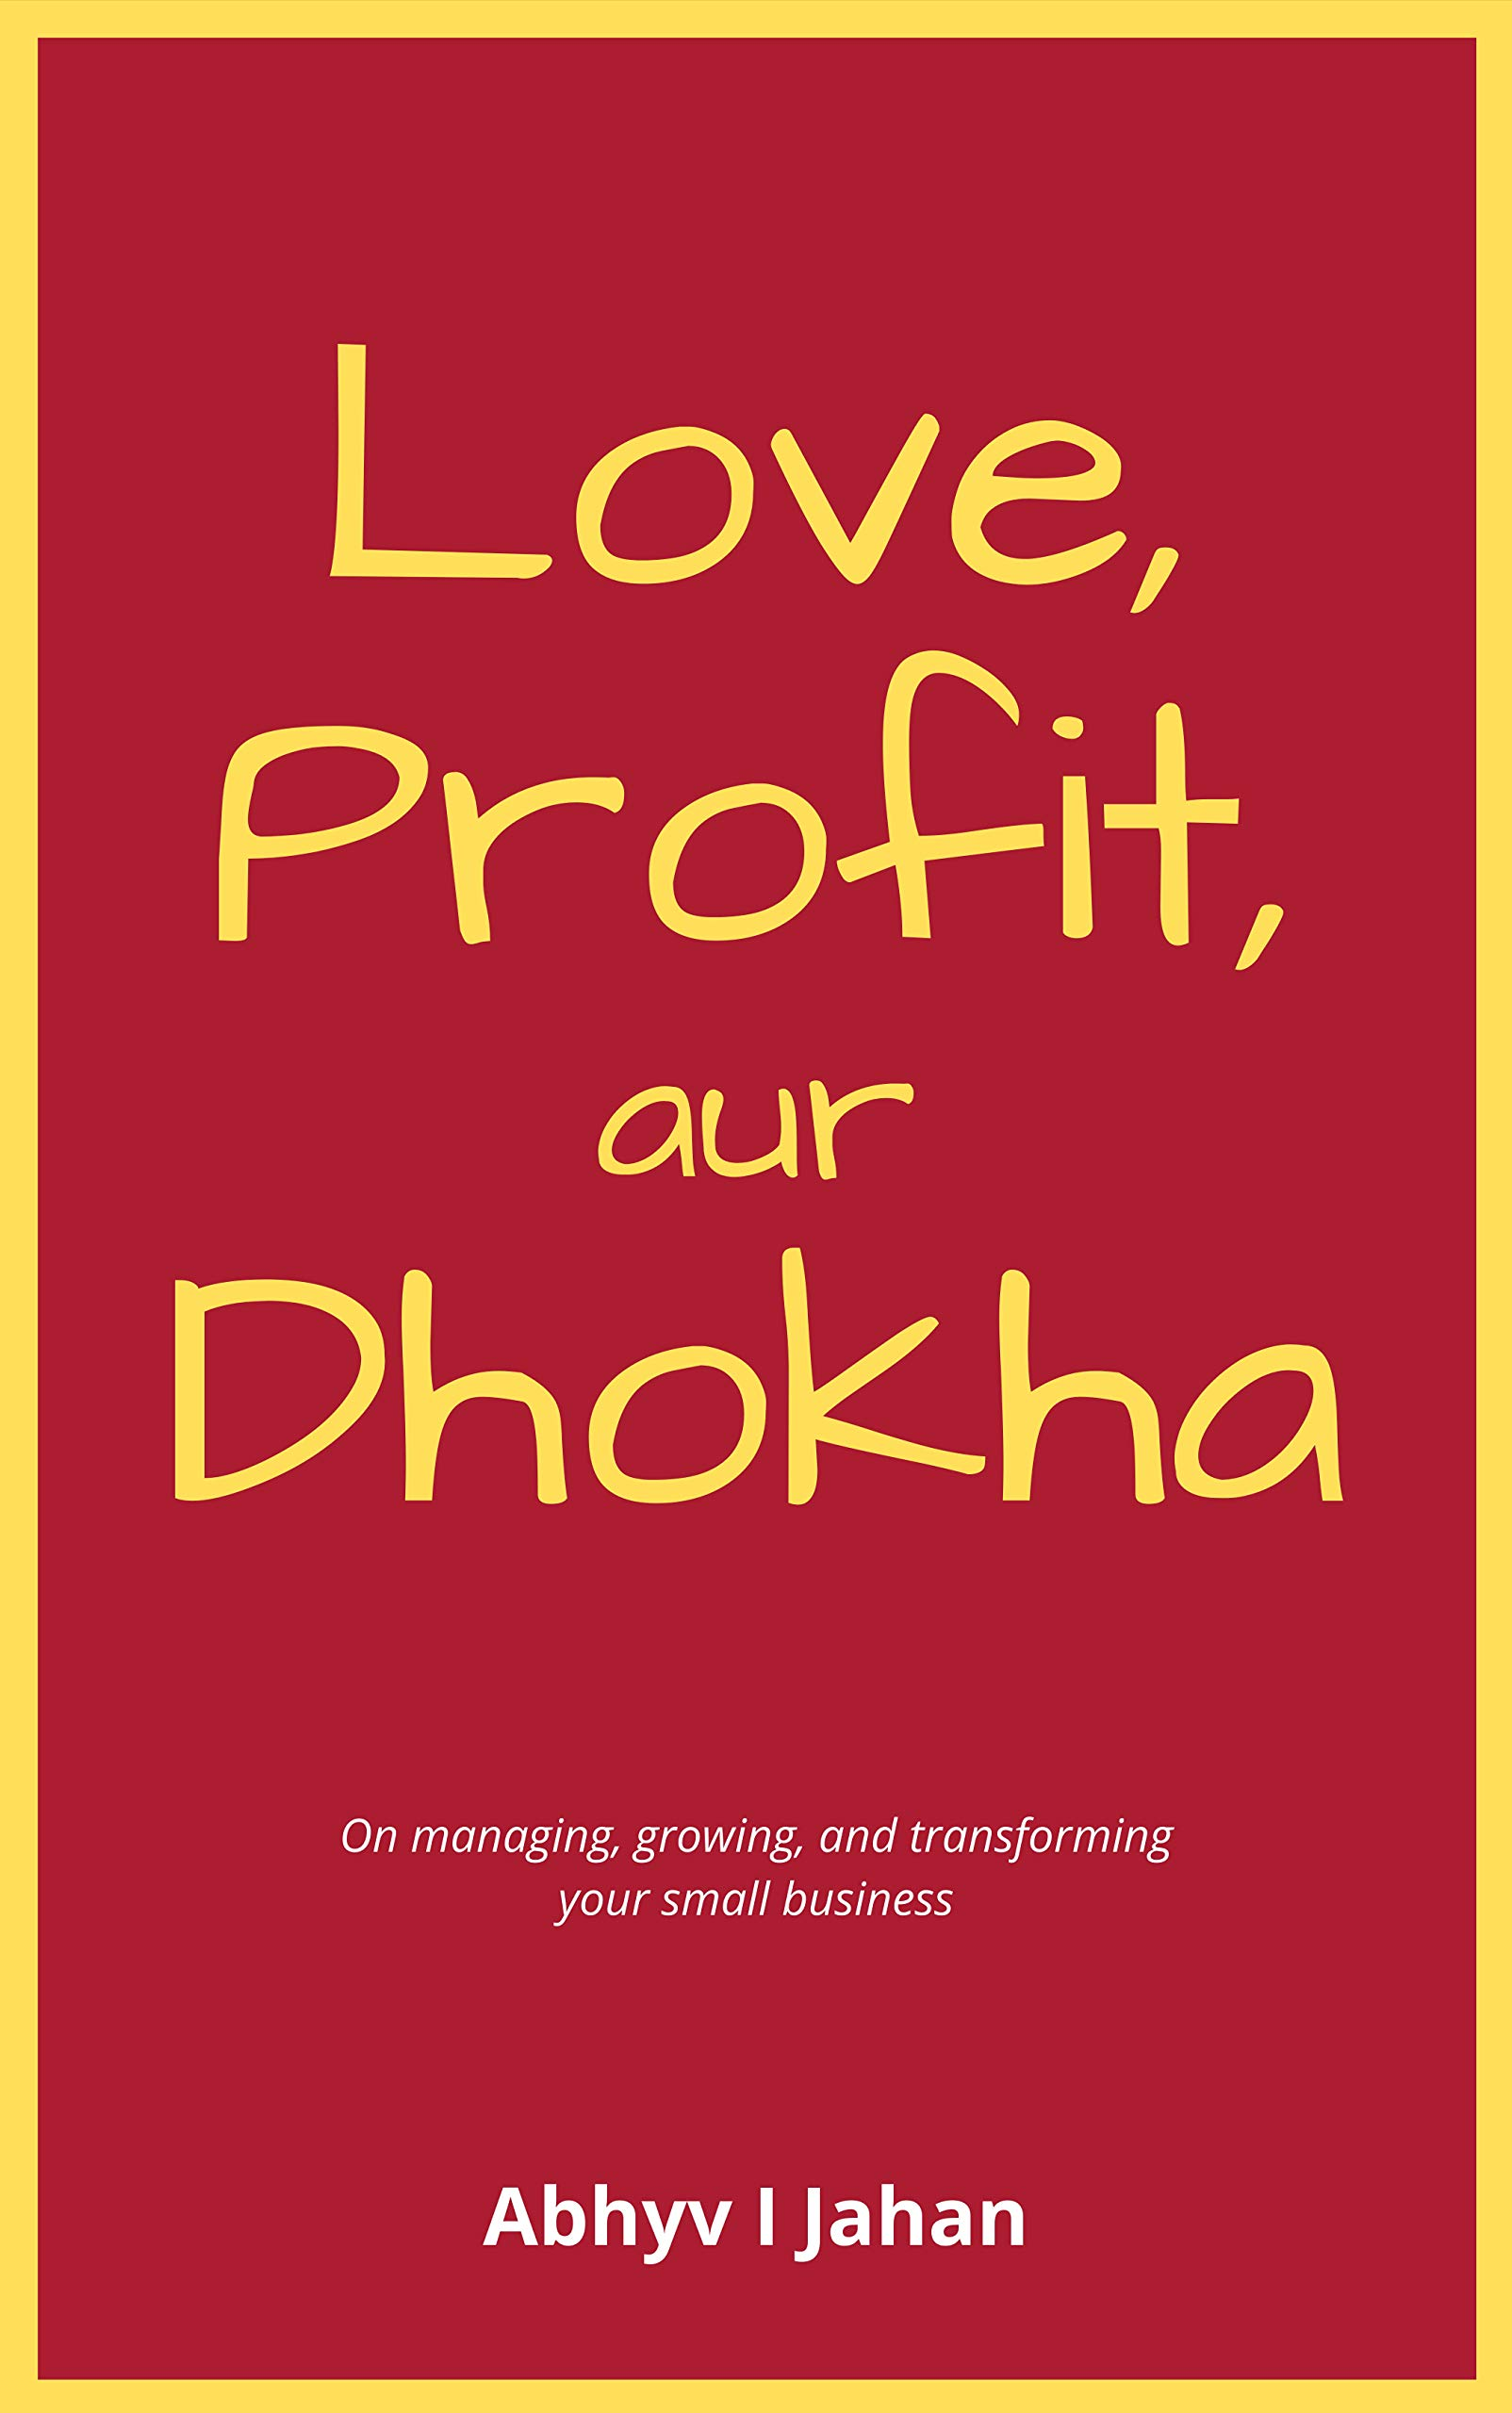 Love, Profit aur Dhokha: On managing, growing & transforming your small business